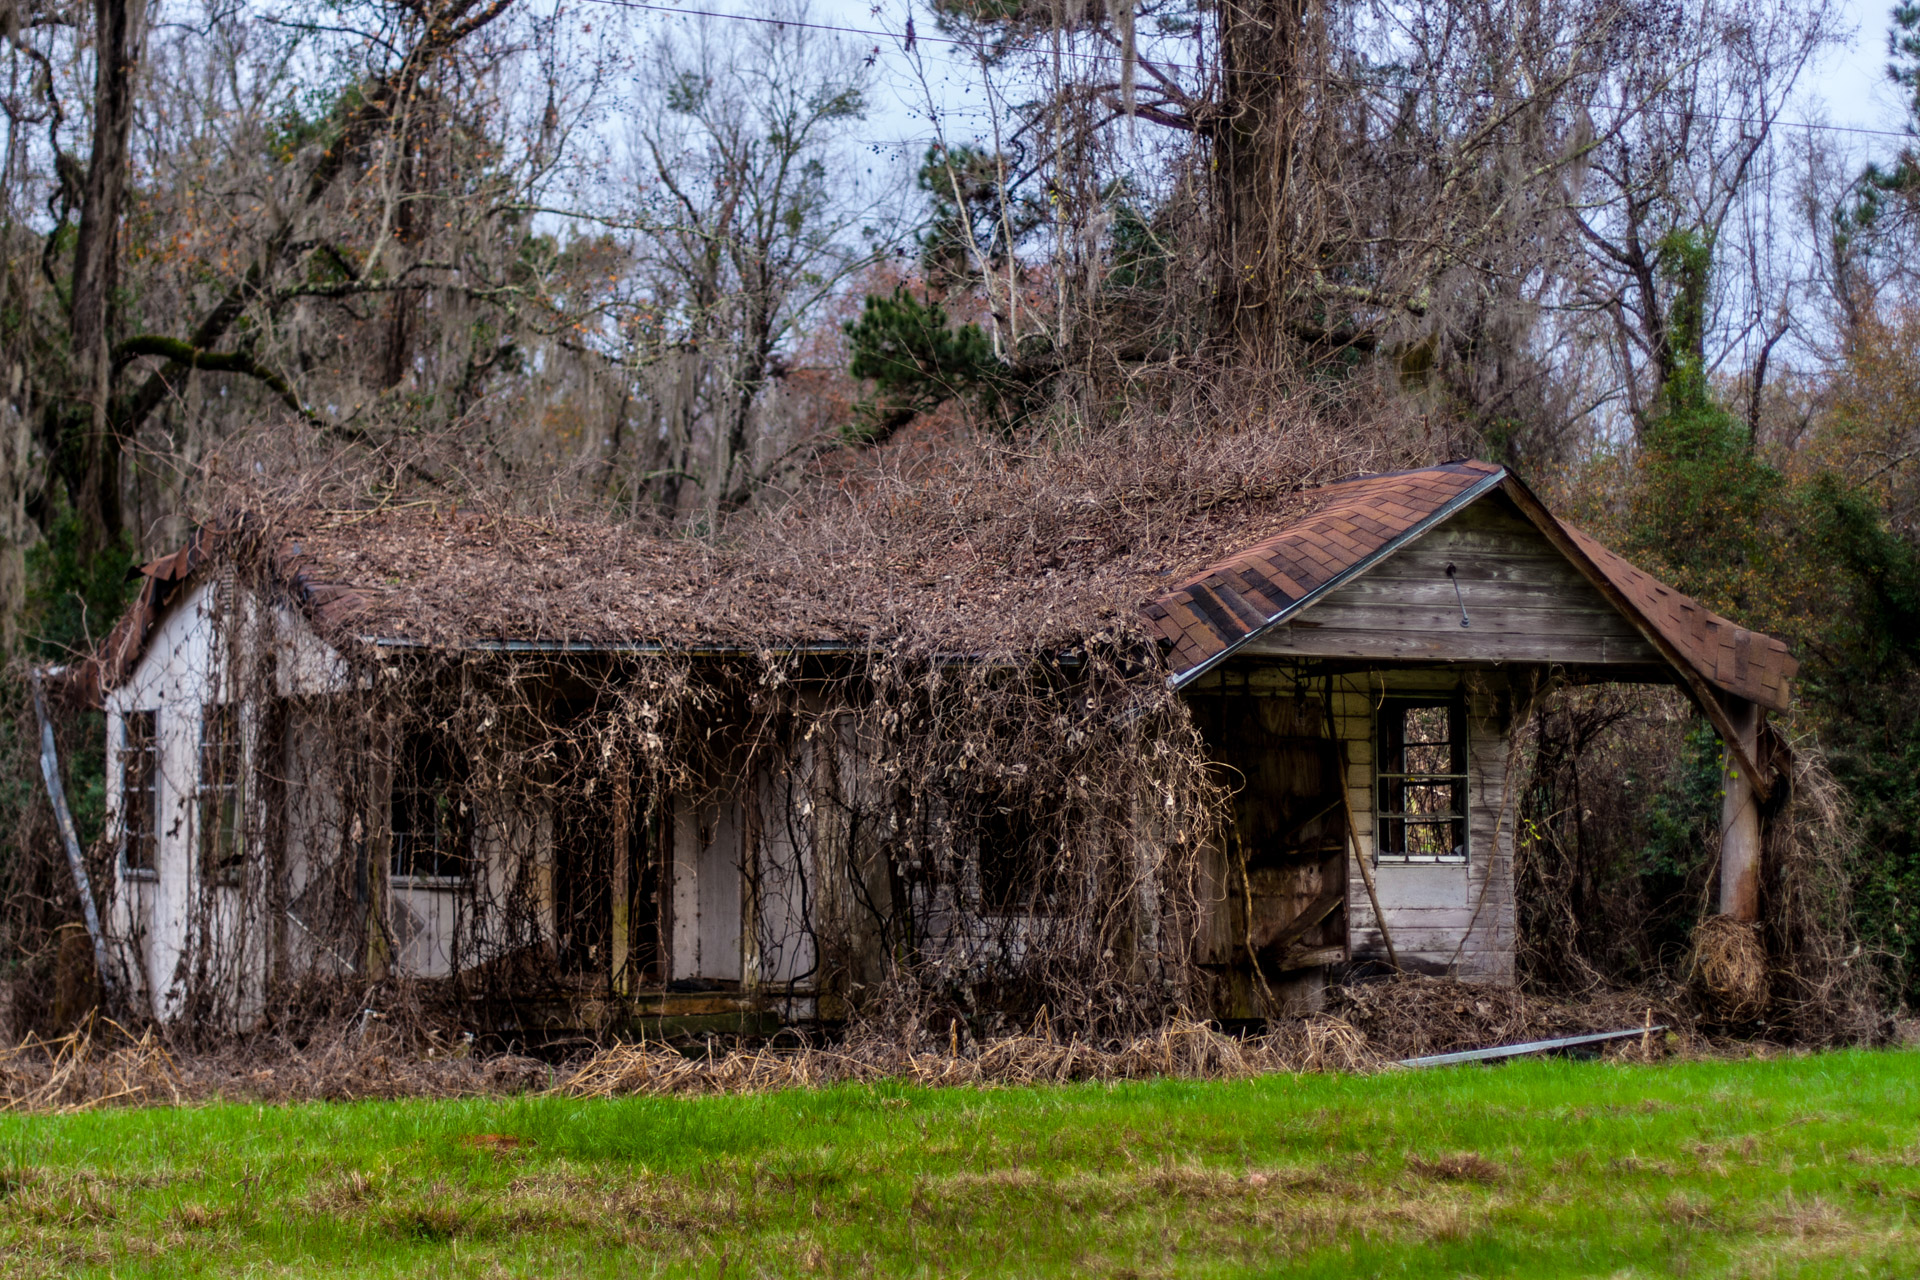 Tallahassee, Florida - A Covered Roof House (left close)